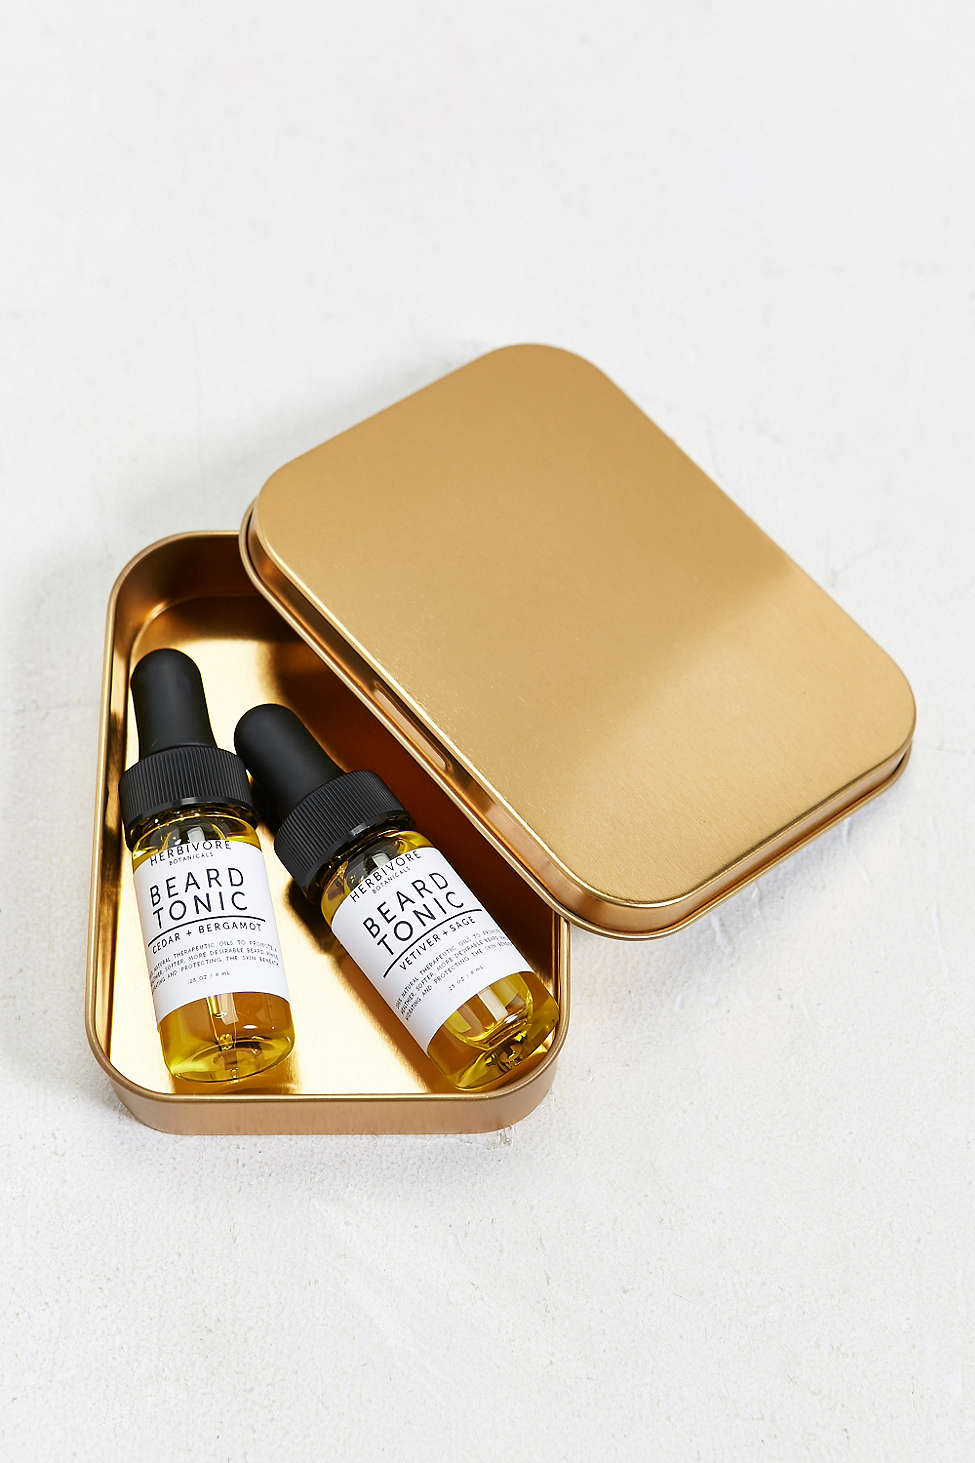 Beard tonics can be used by both men and women for beards, eyebrows, scalp care, and more